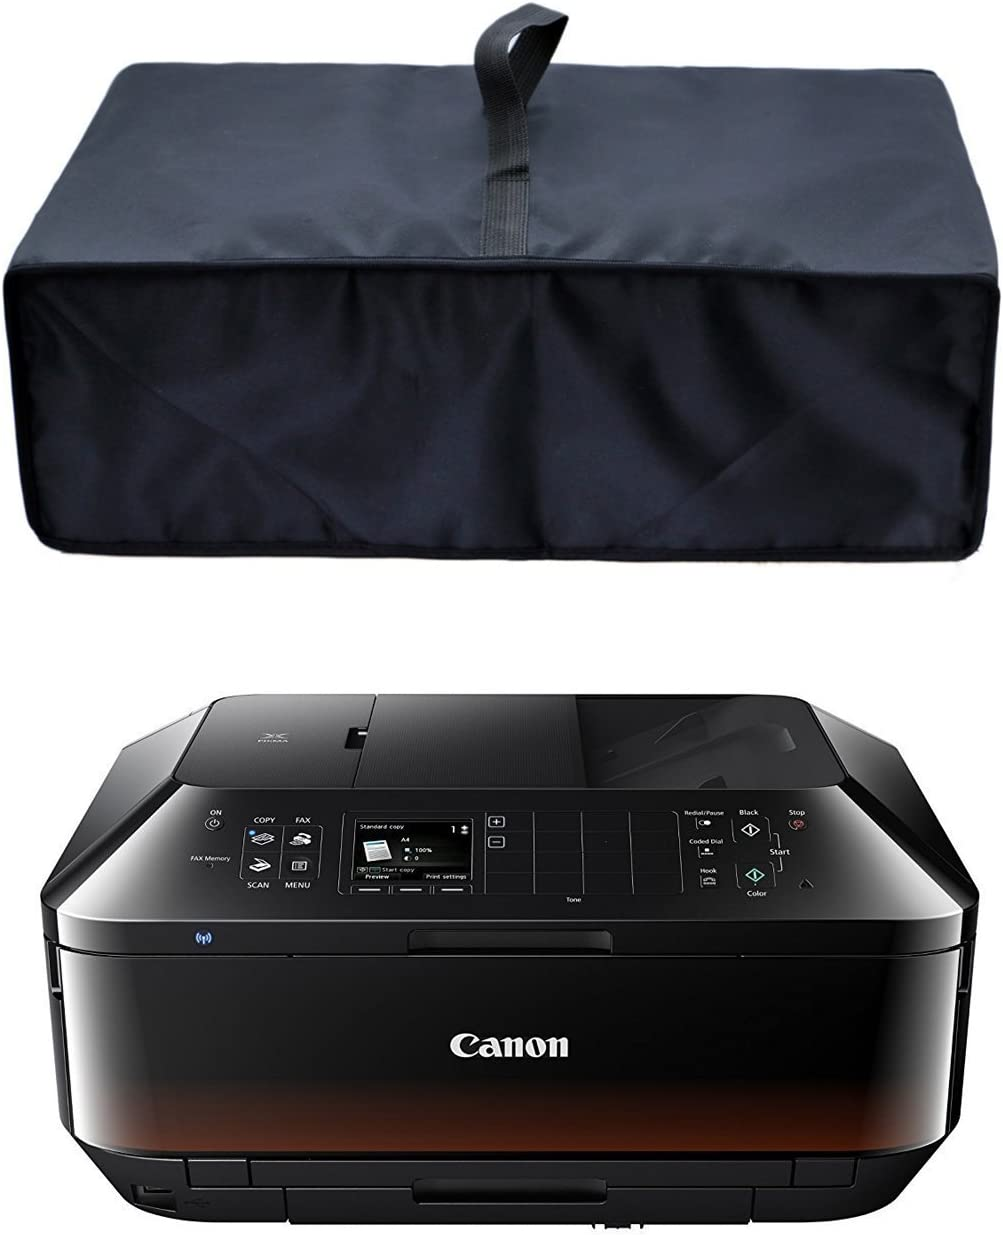 CYGQ Heavy Duty Nylon Antistatic Water Resistant Printer Cover Case, Premium Fabric Printer Dust Cover for Canon Pixma MX922/MX492/MX532 Printers